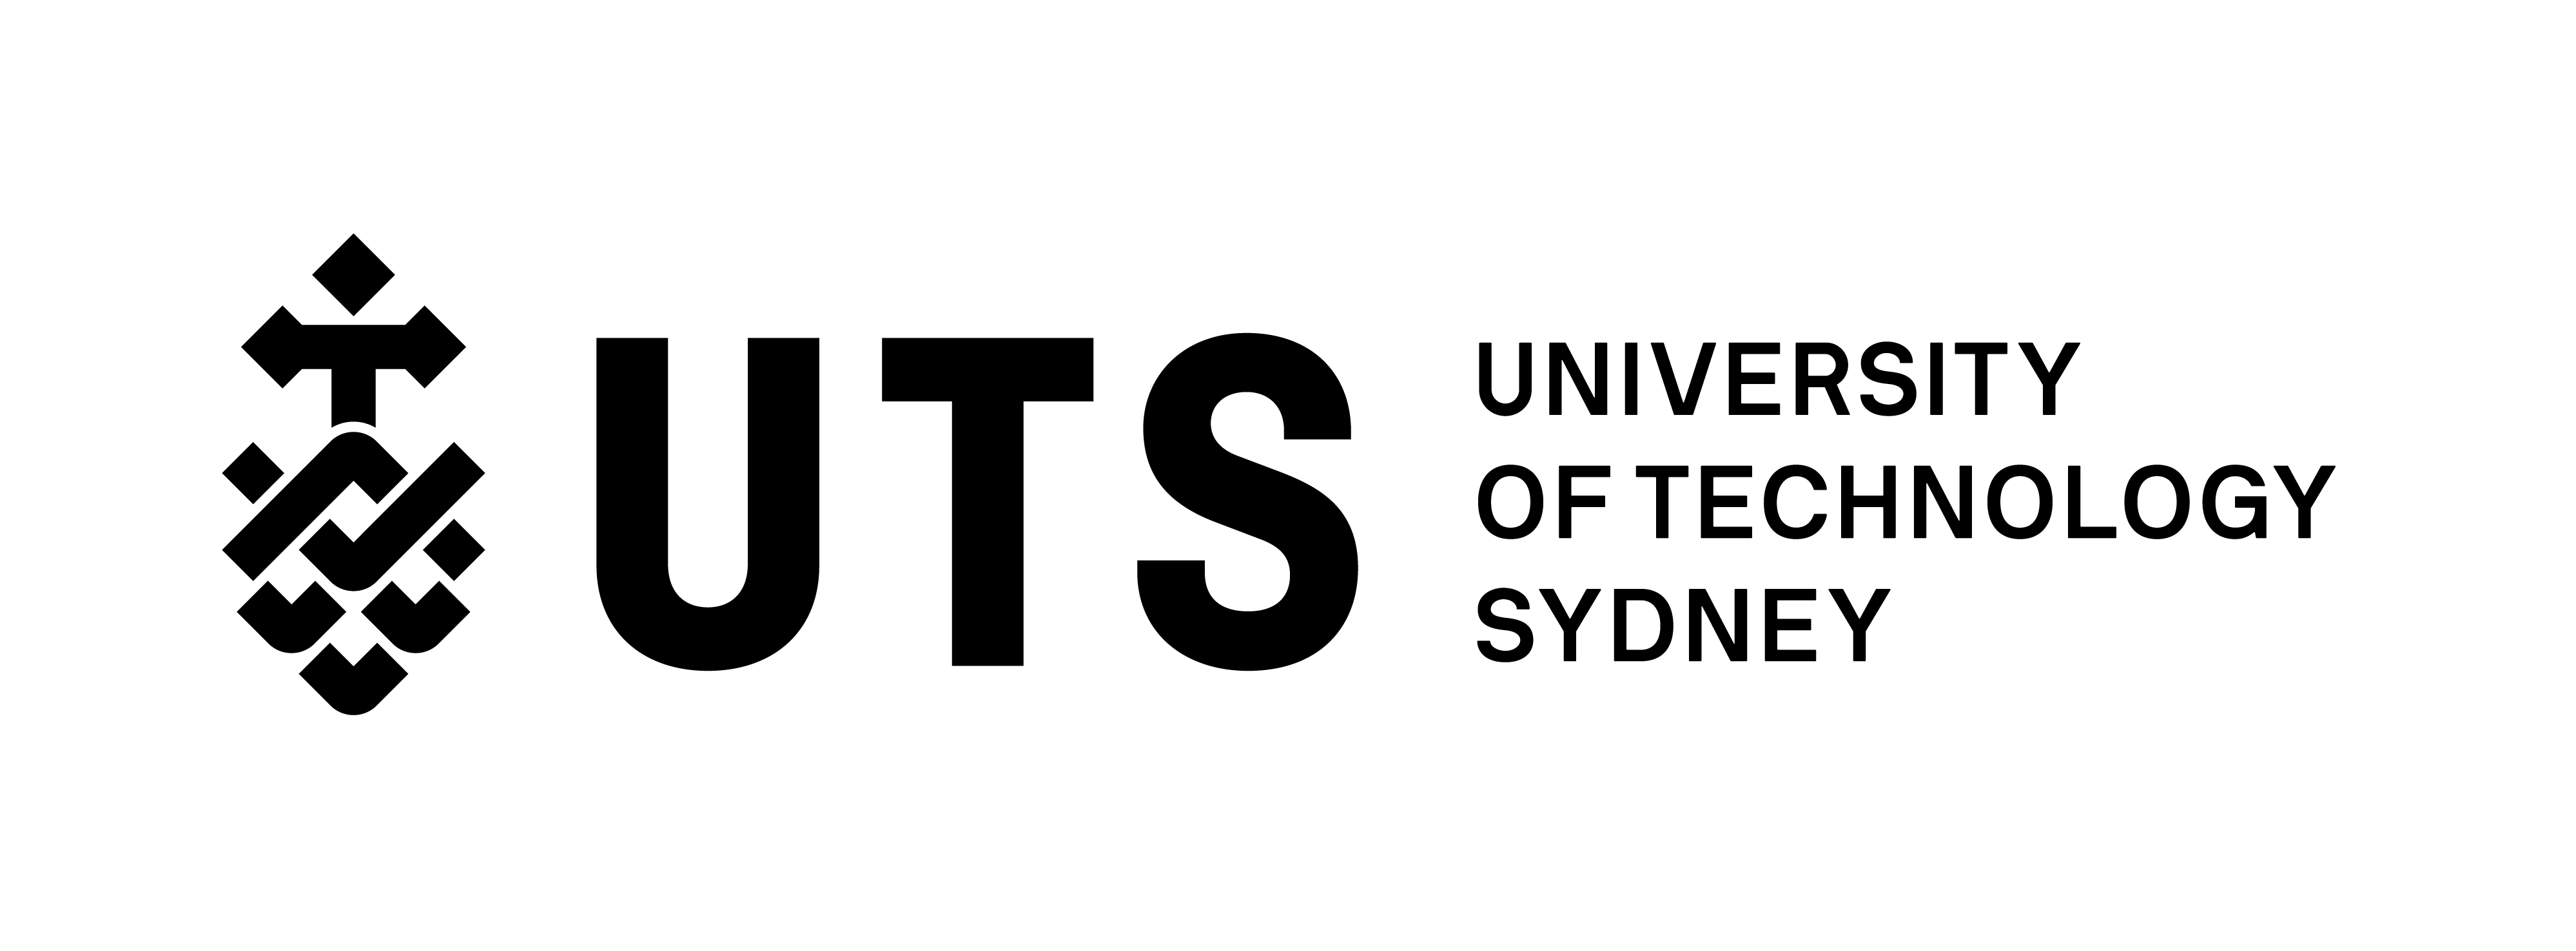 University of Technology Sydney - Bachelor of Business